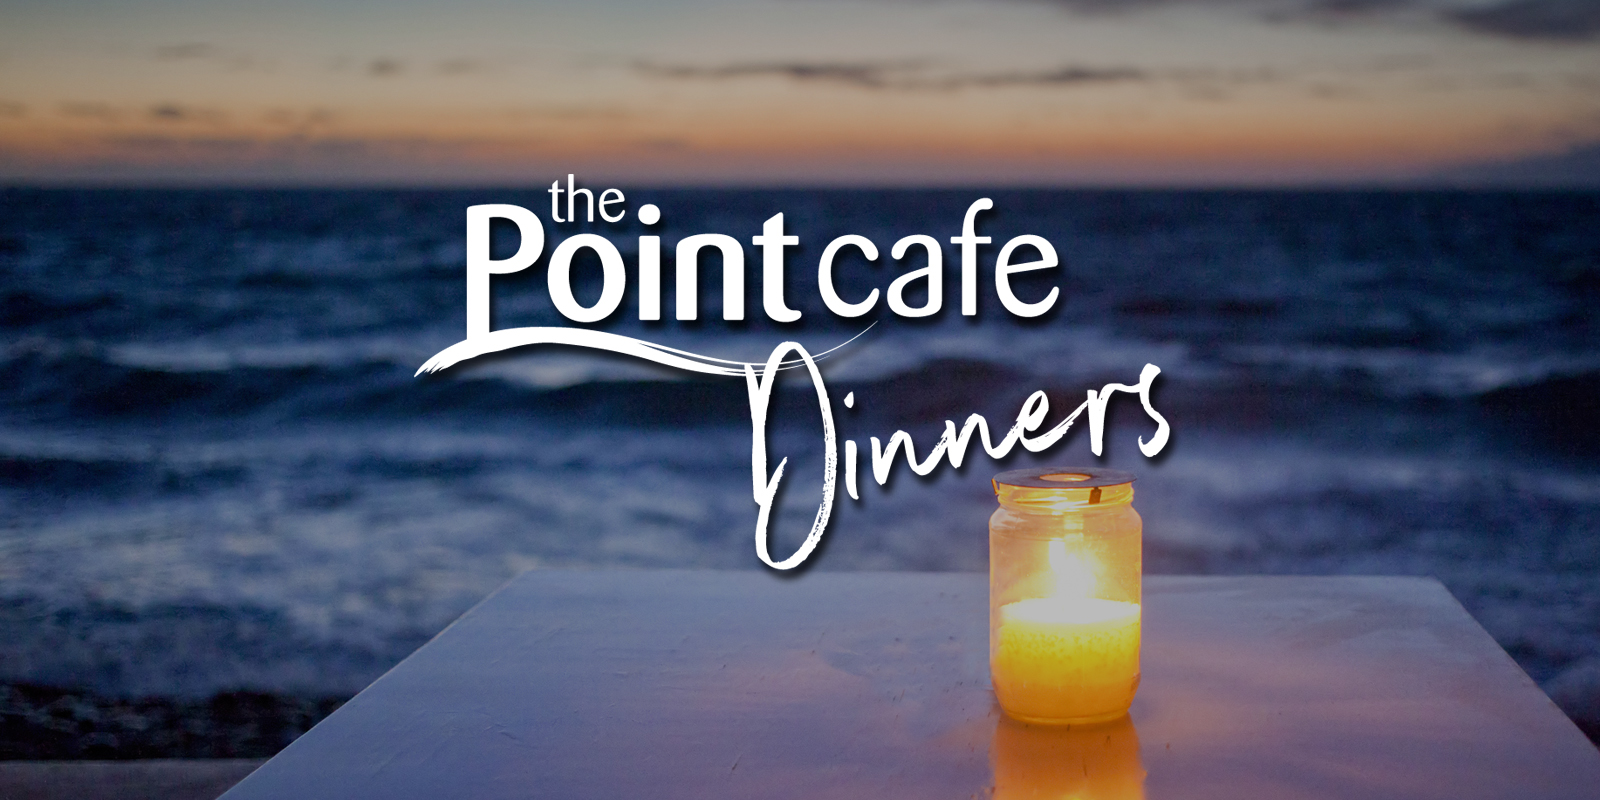 Point Cafe Dinners